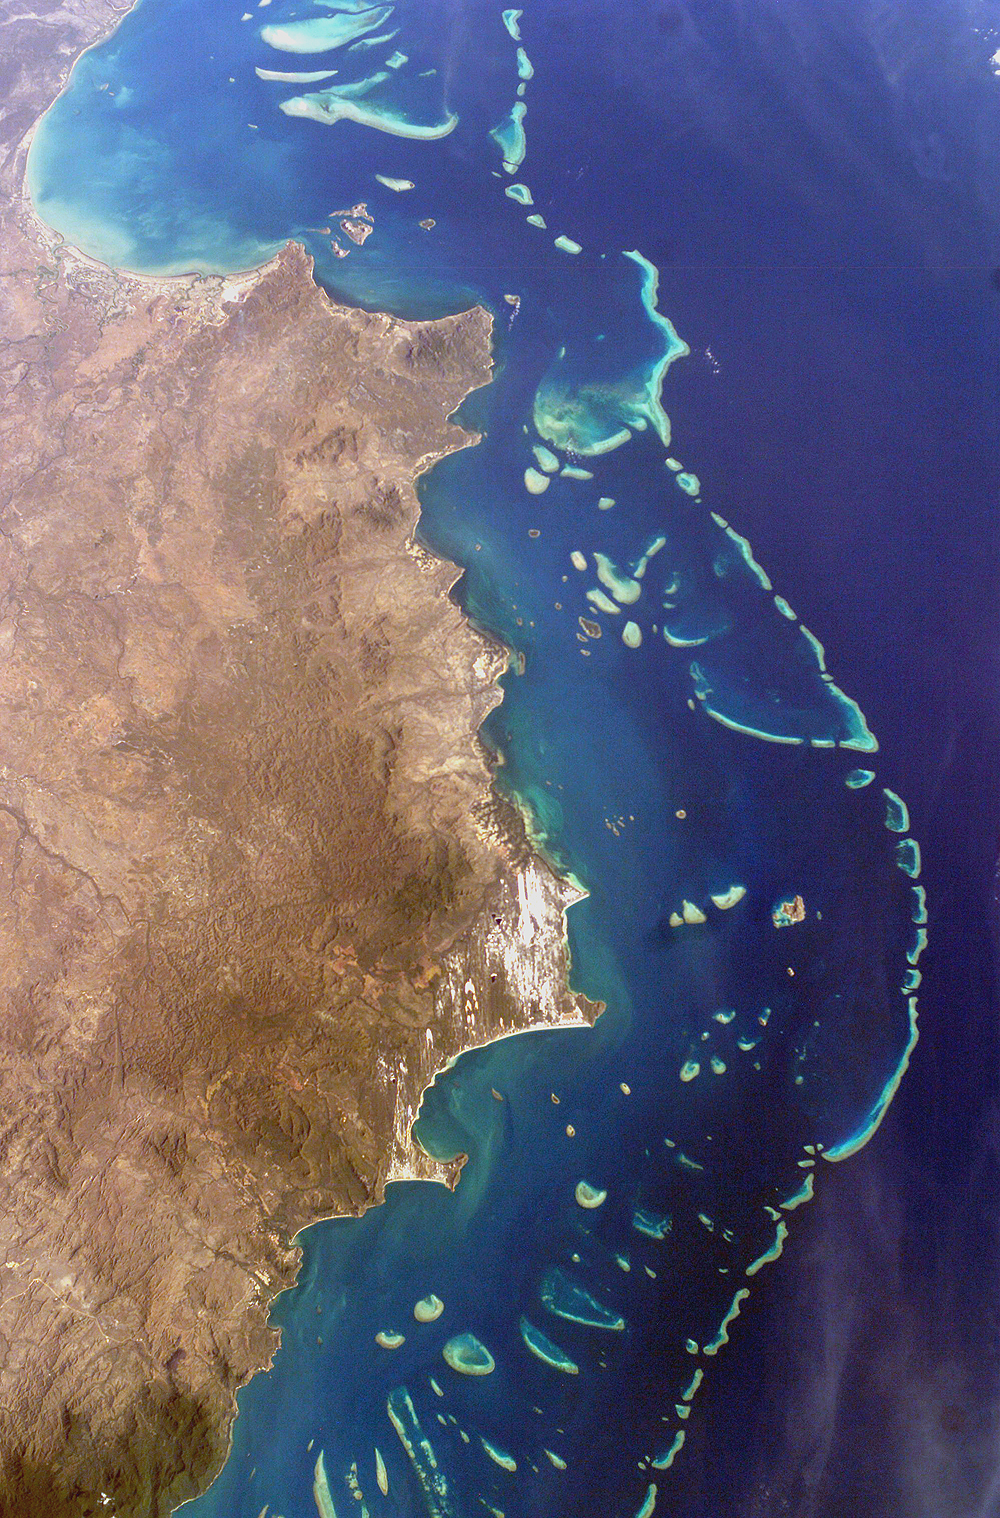 RIP to the Great Barrier Reef, you will be missed [1000x1518]